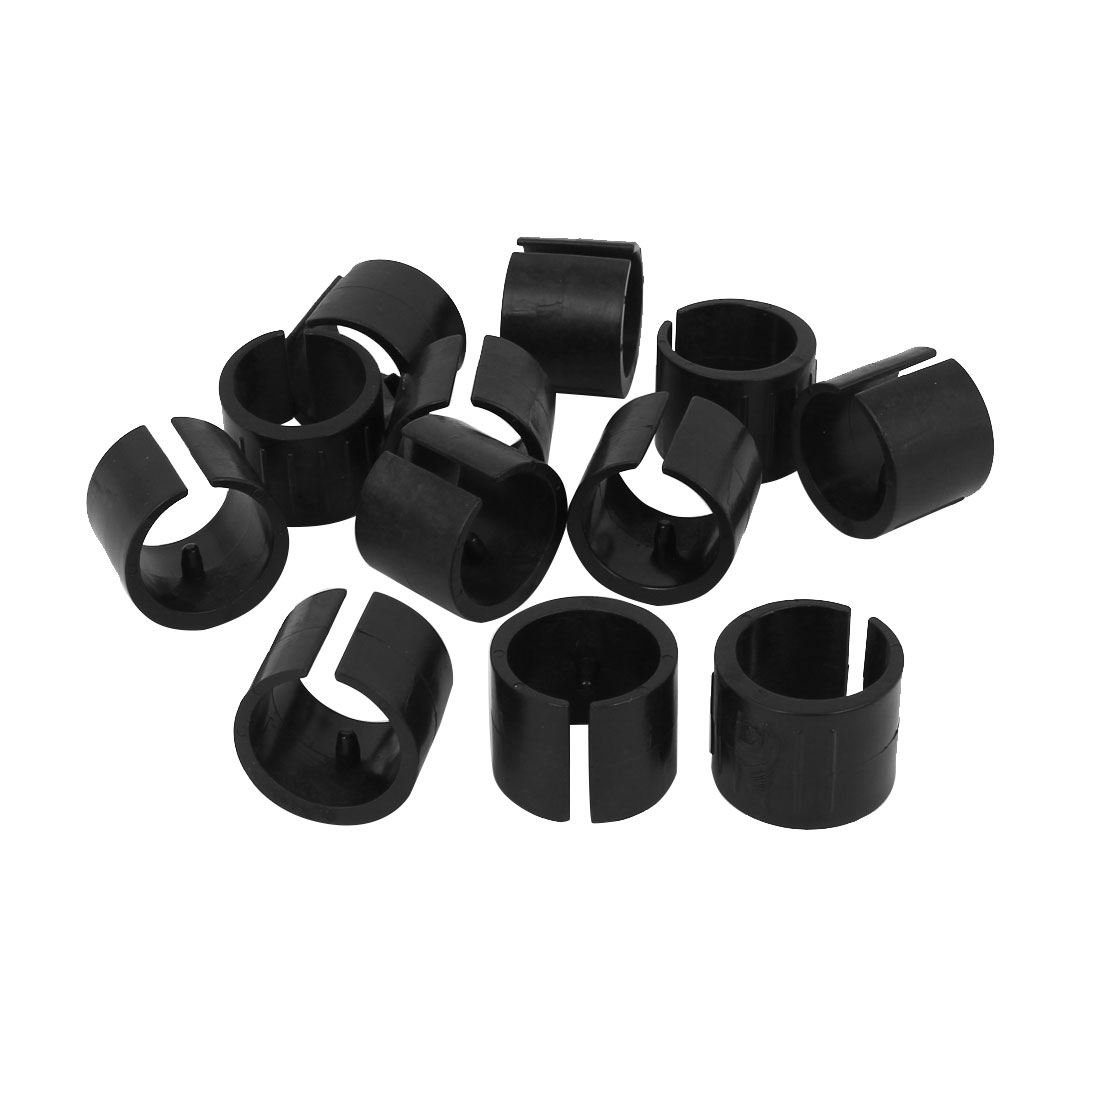 32mm Dia. Nonslip Plastic Round Pipe Clamp Foot Pads for Chair 12Pcs Black